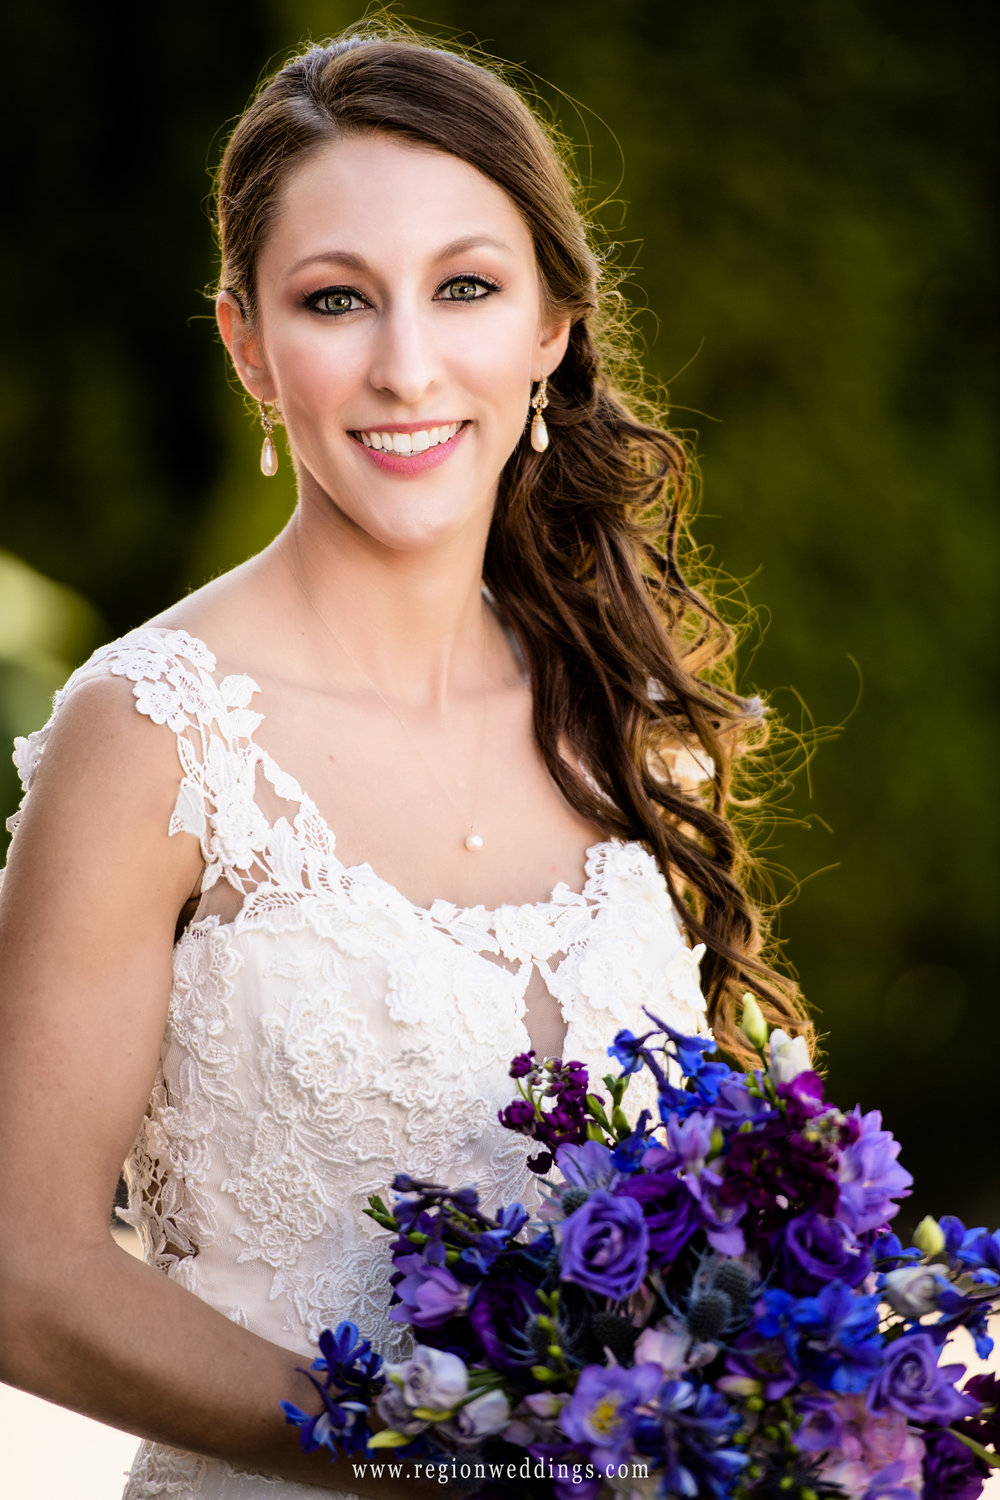 Beautiful bride with a purple and blue bouquet of flowers.